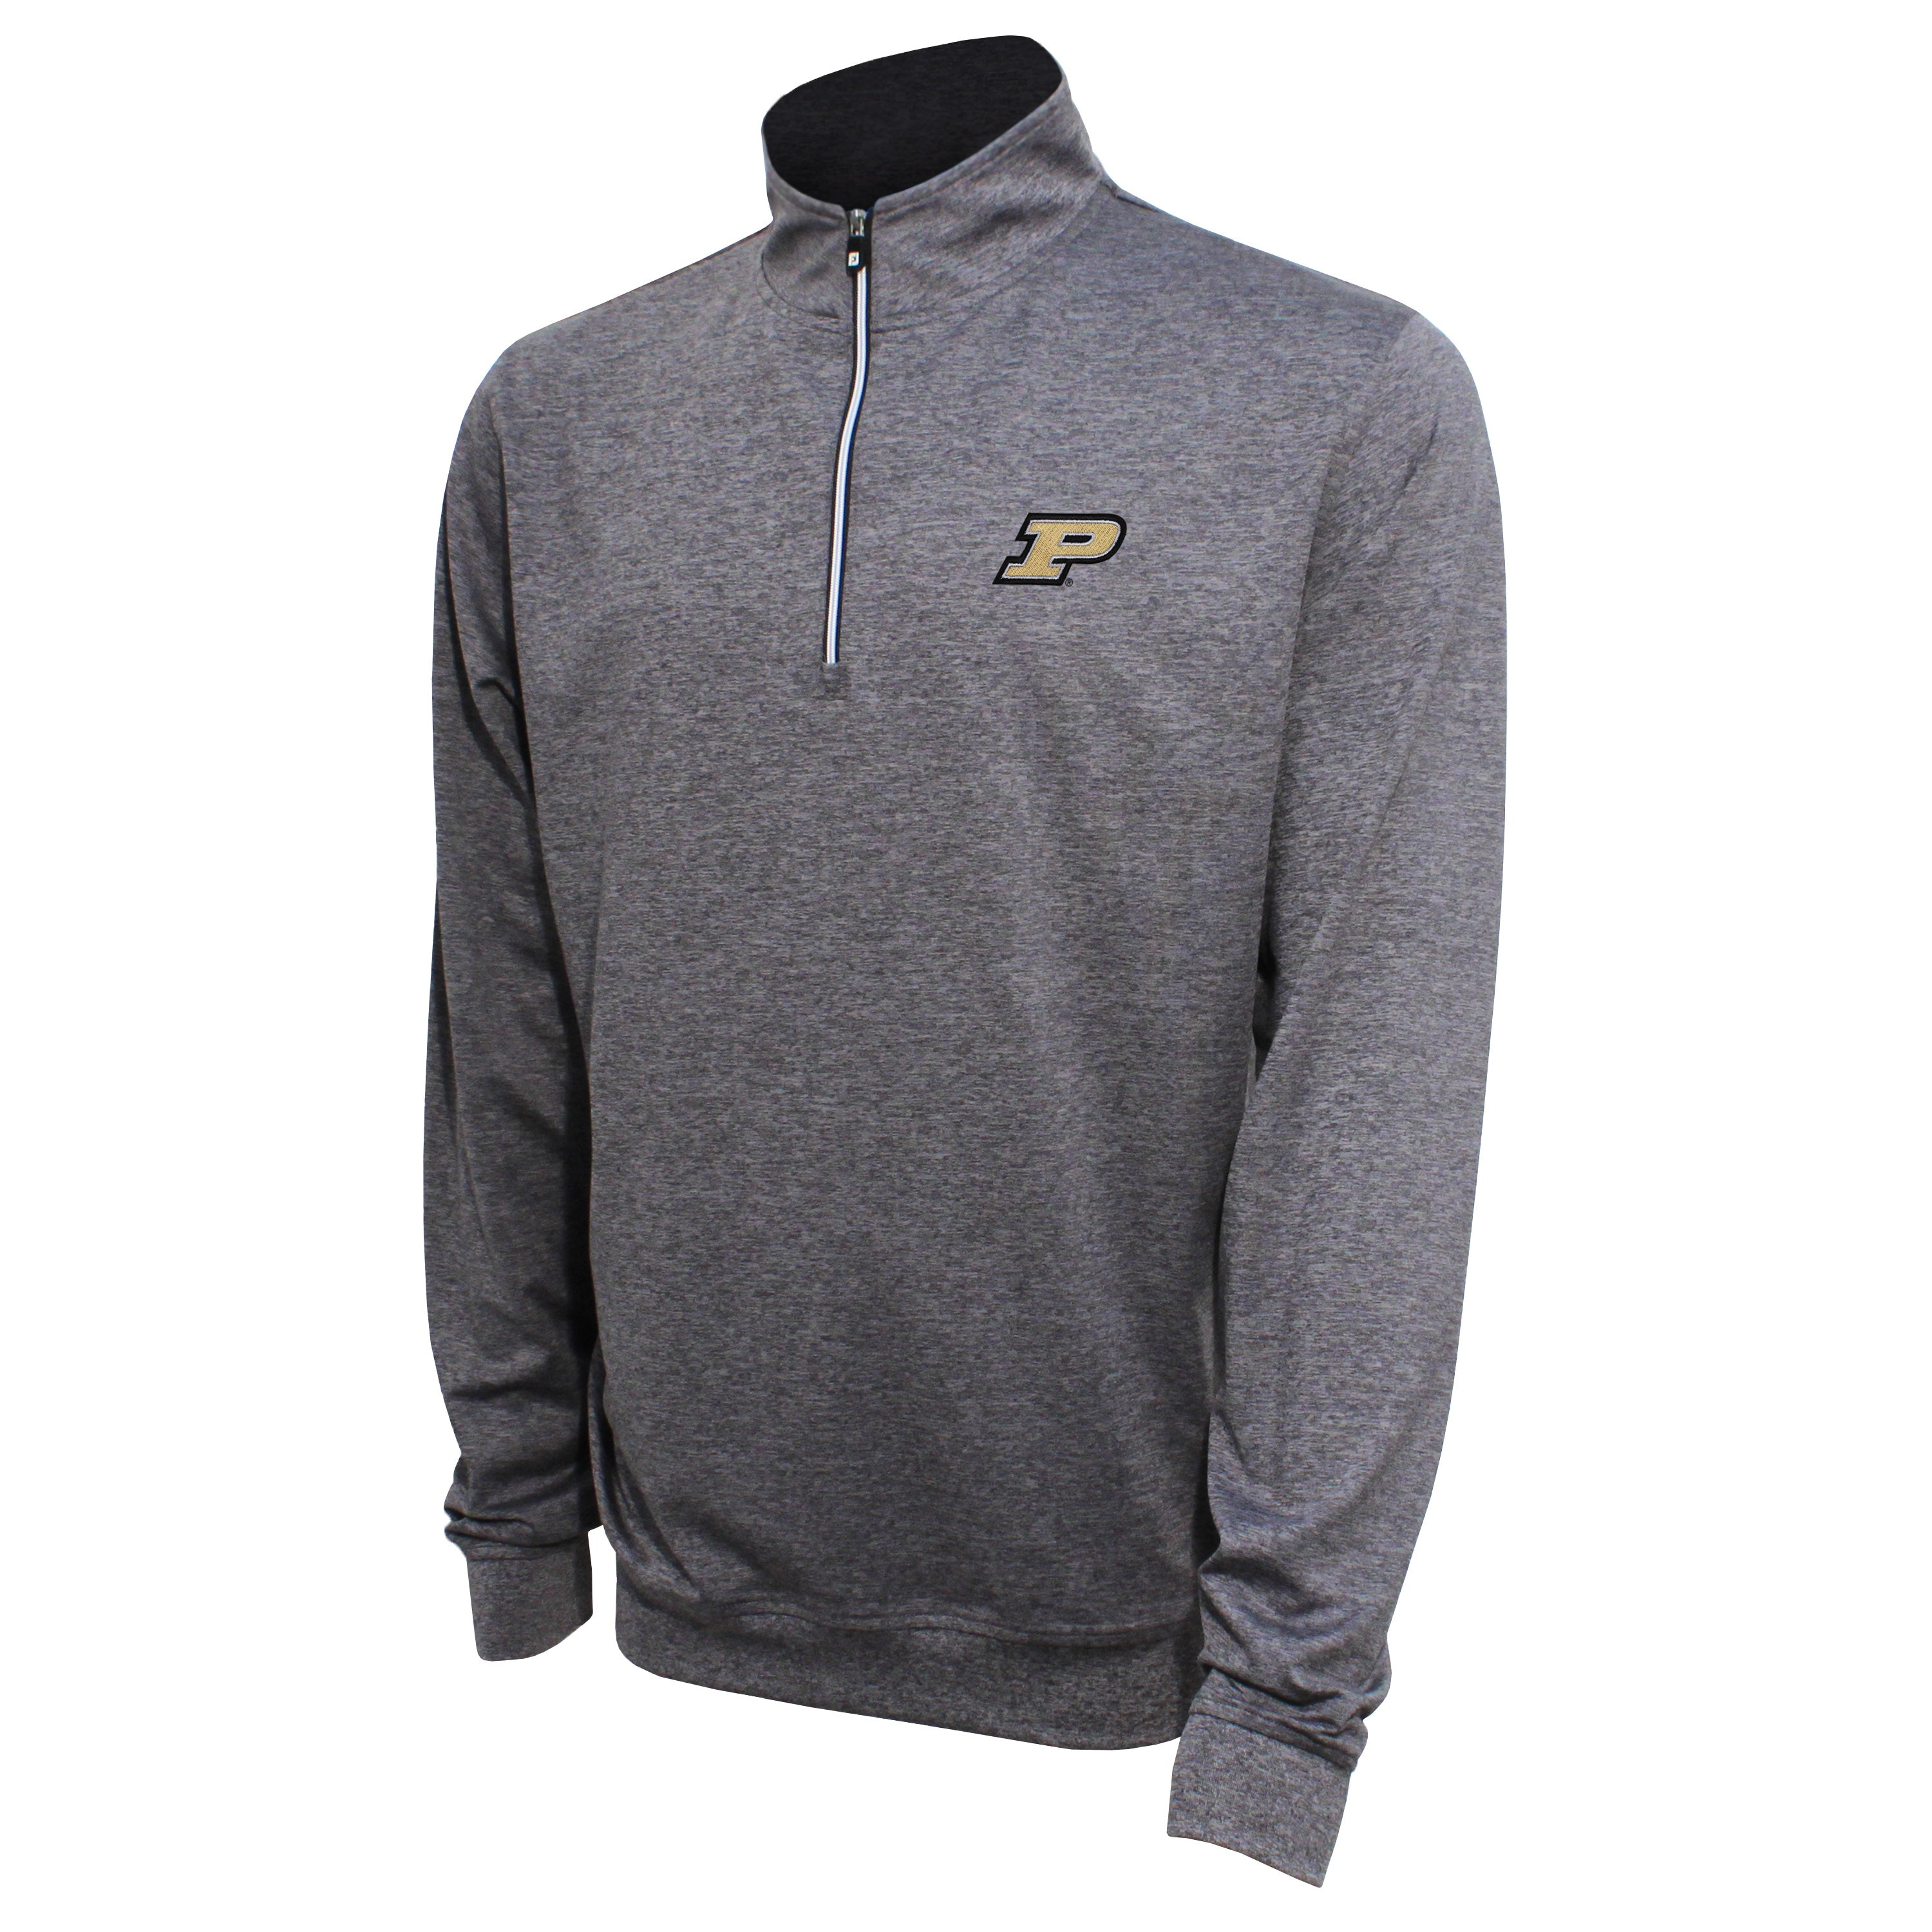 FootJoy Purdue University Half-Zip Pullover